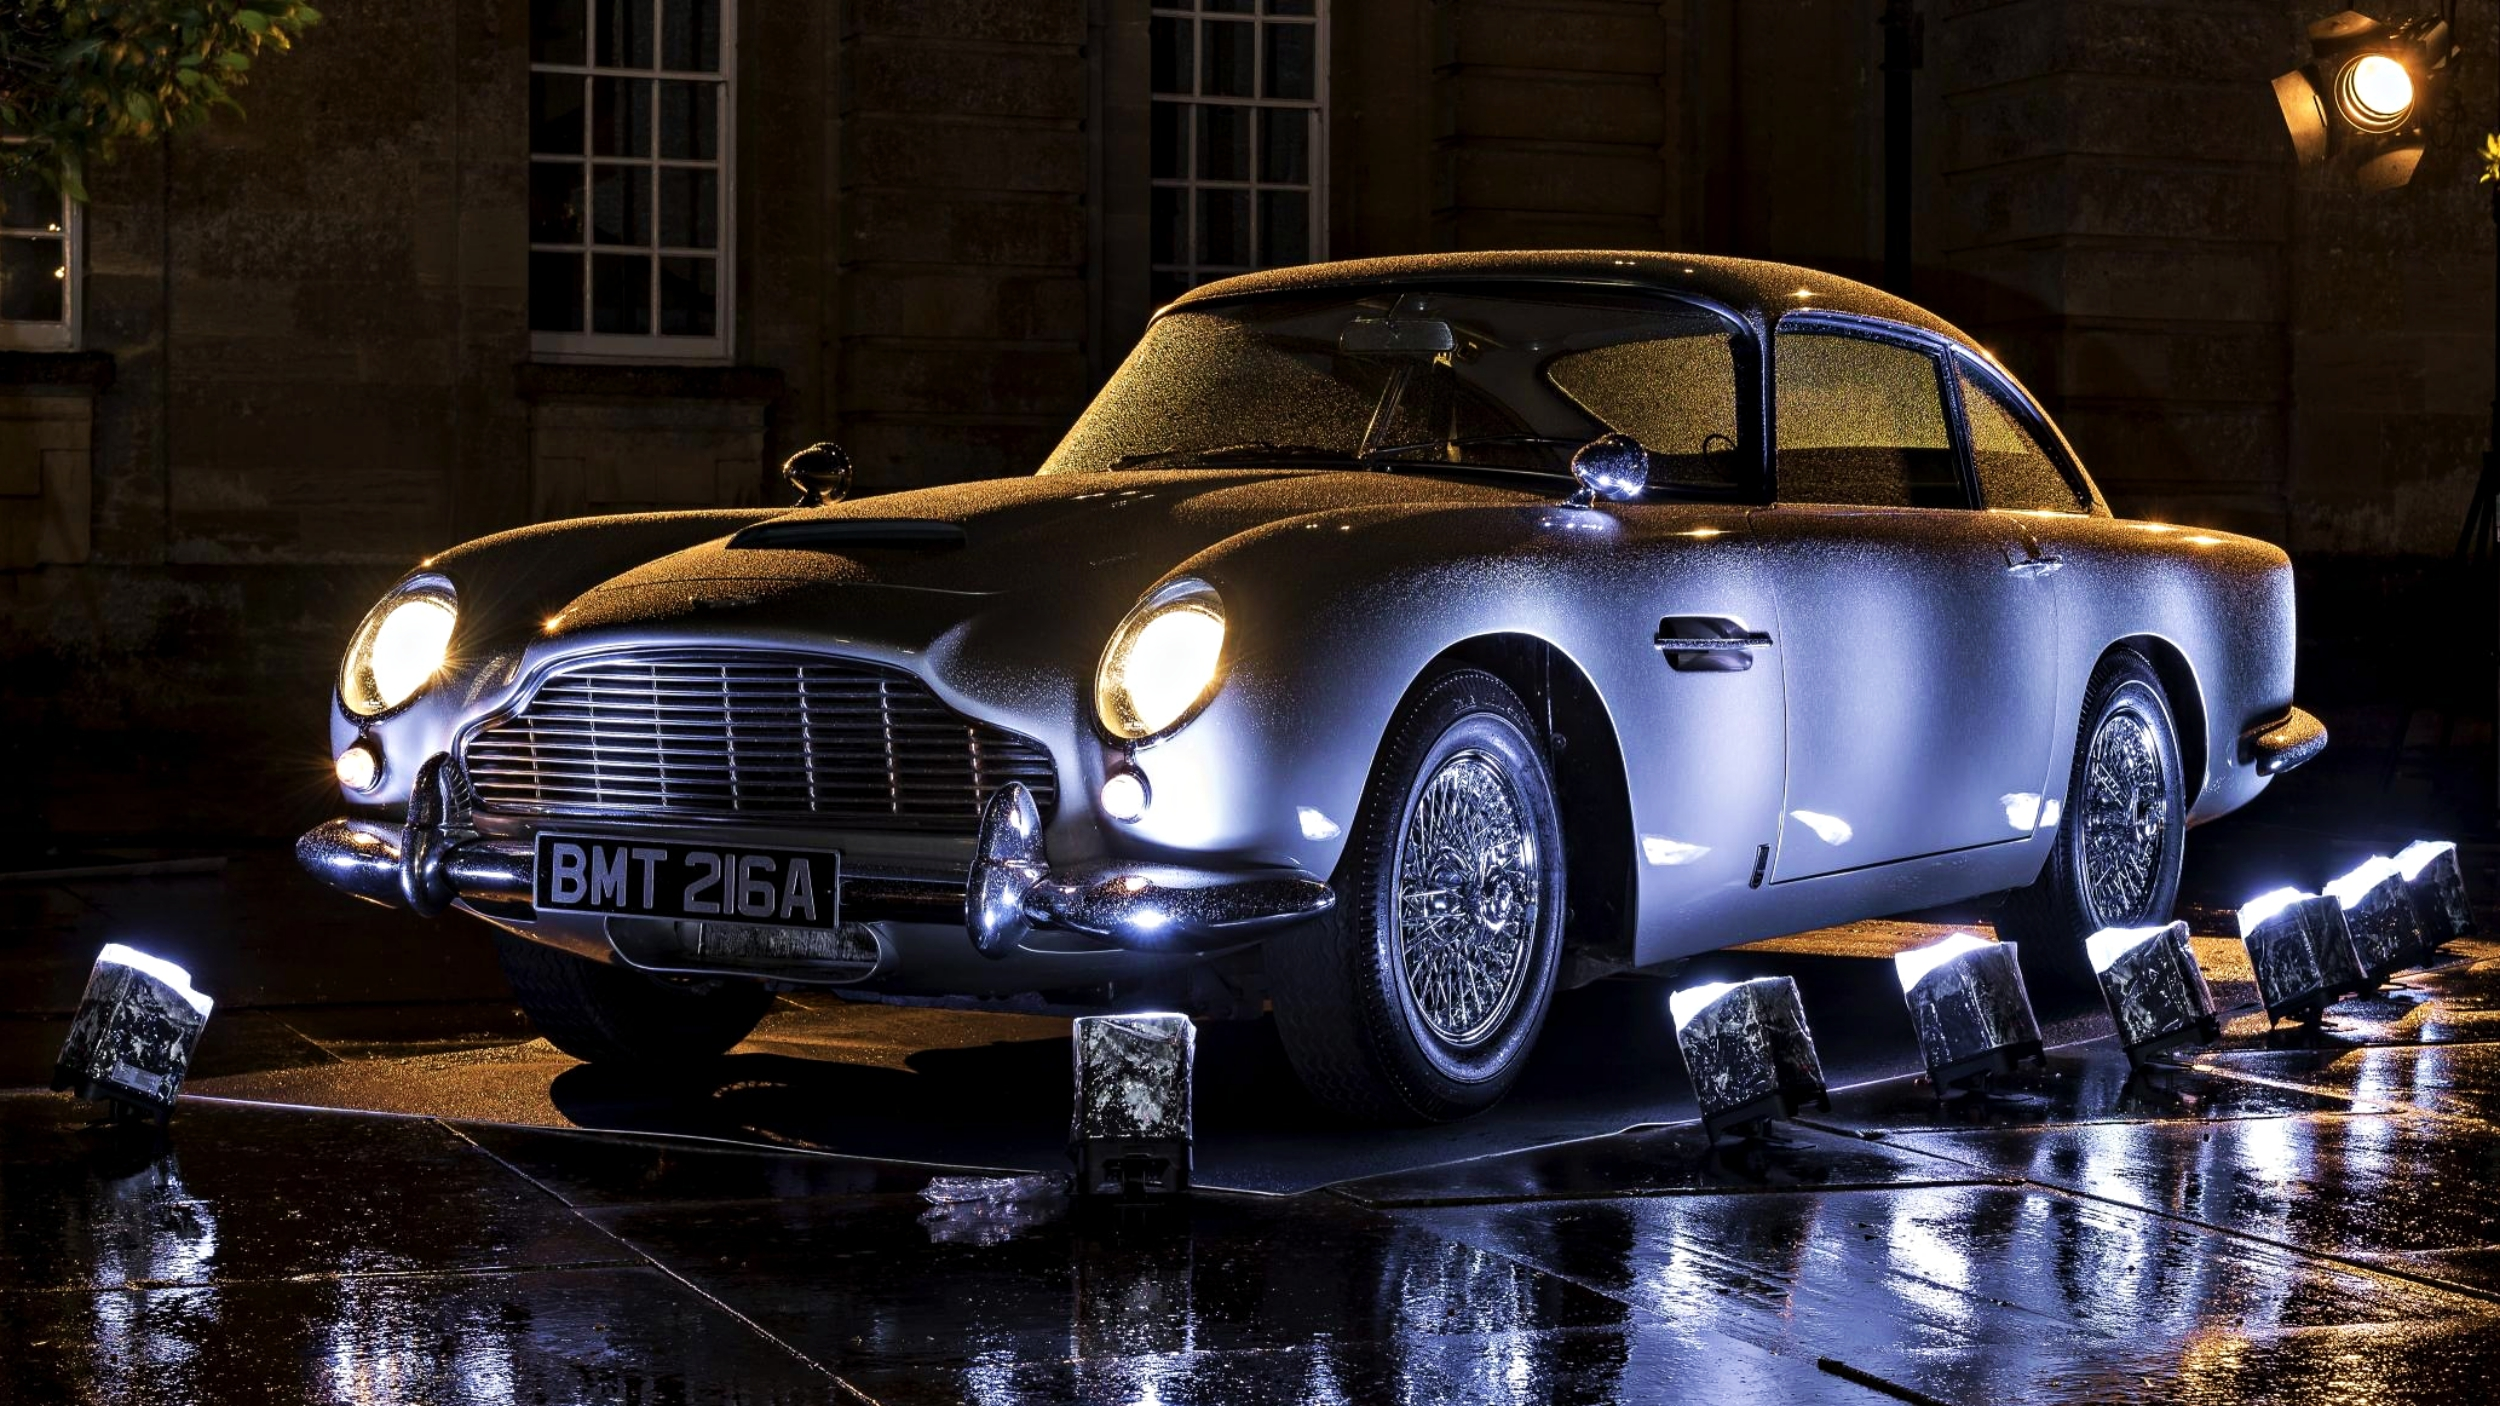 News Aston Martin To Make 25 Db5 Goldfinger